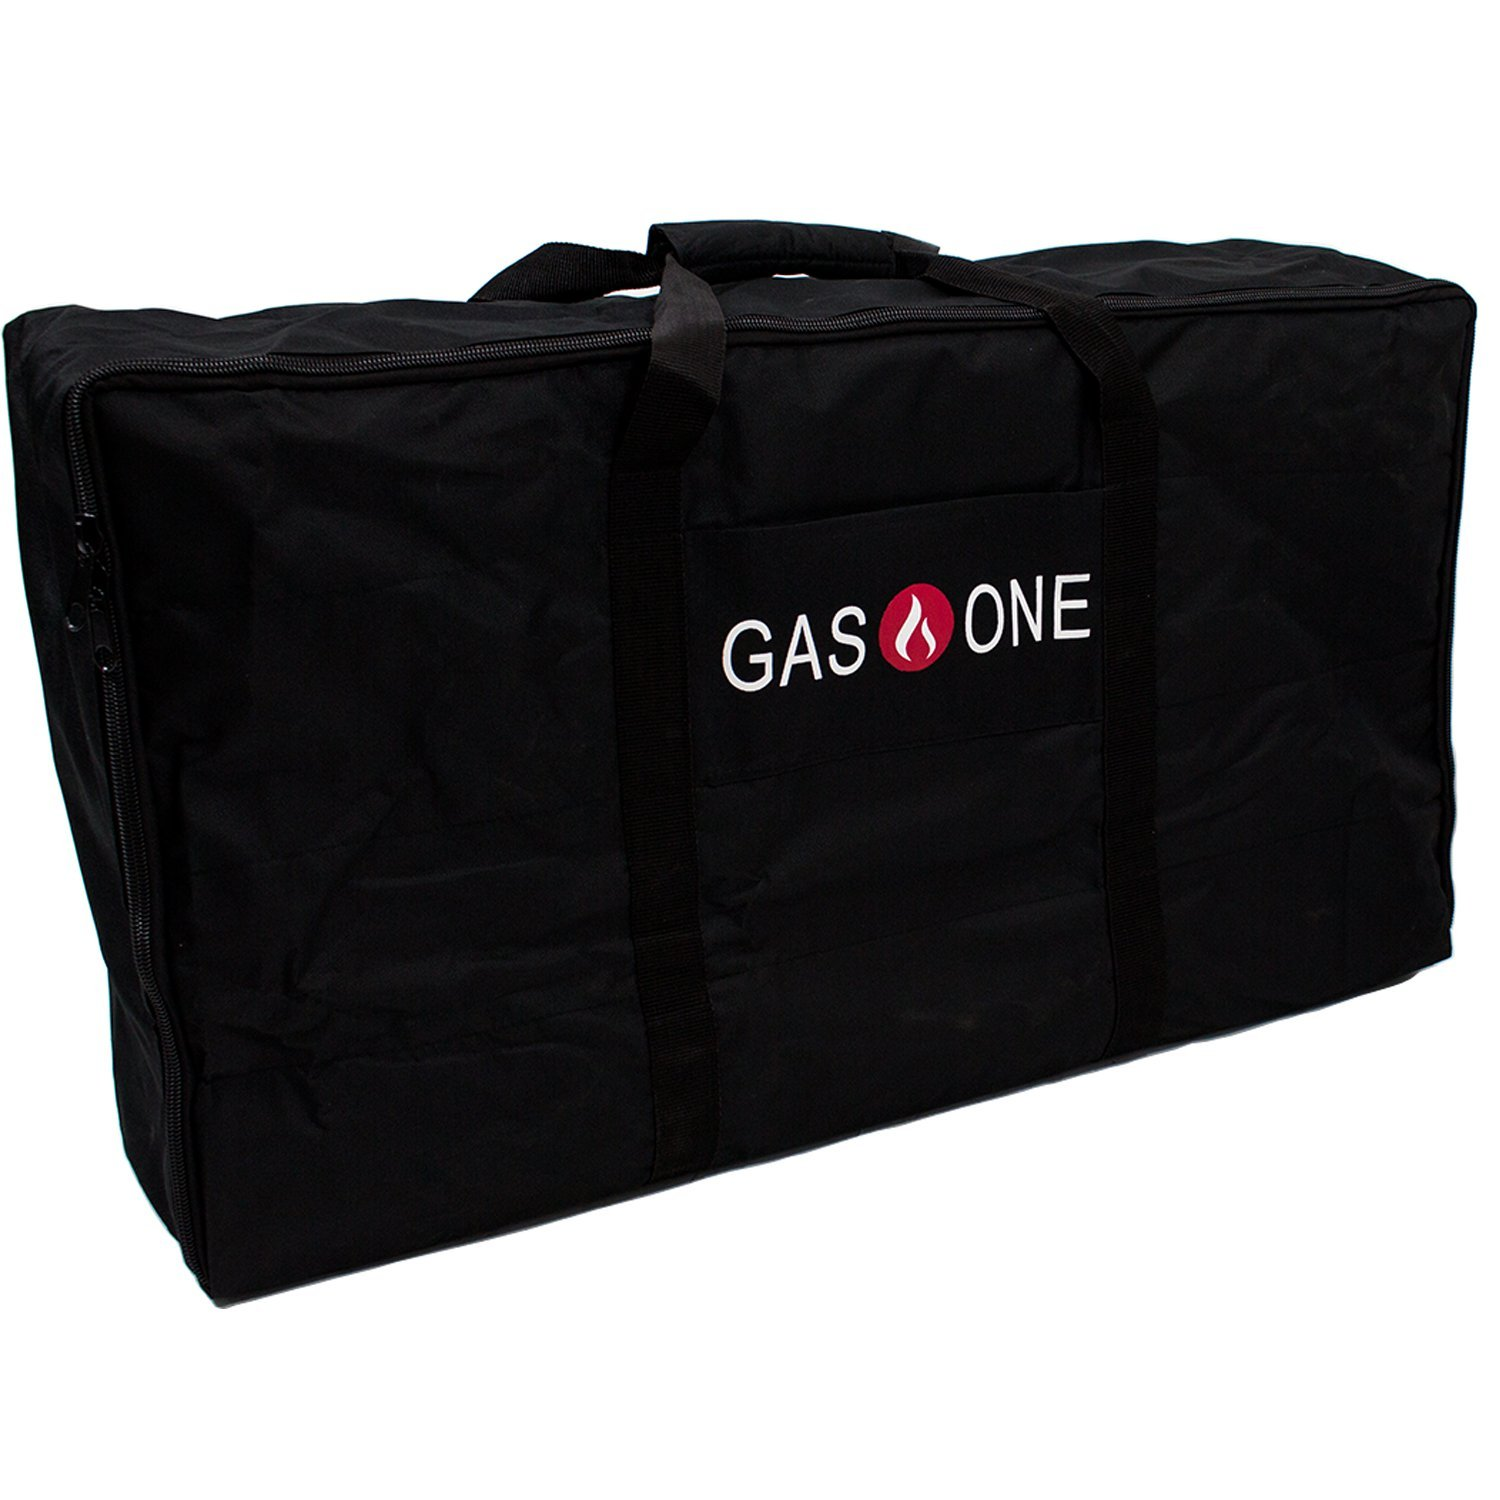 GasOne New Propane Stove Burner Universal Carry Bag for Double Burner Cooker Grills Heavy Duty FITS Gas One Double Burner, Camp Chef & All Other Similar Sized Burners